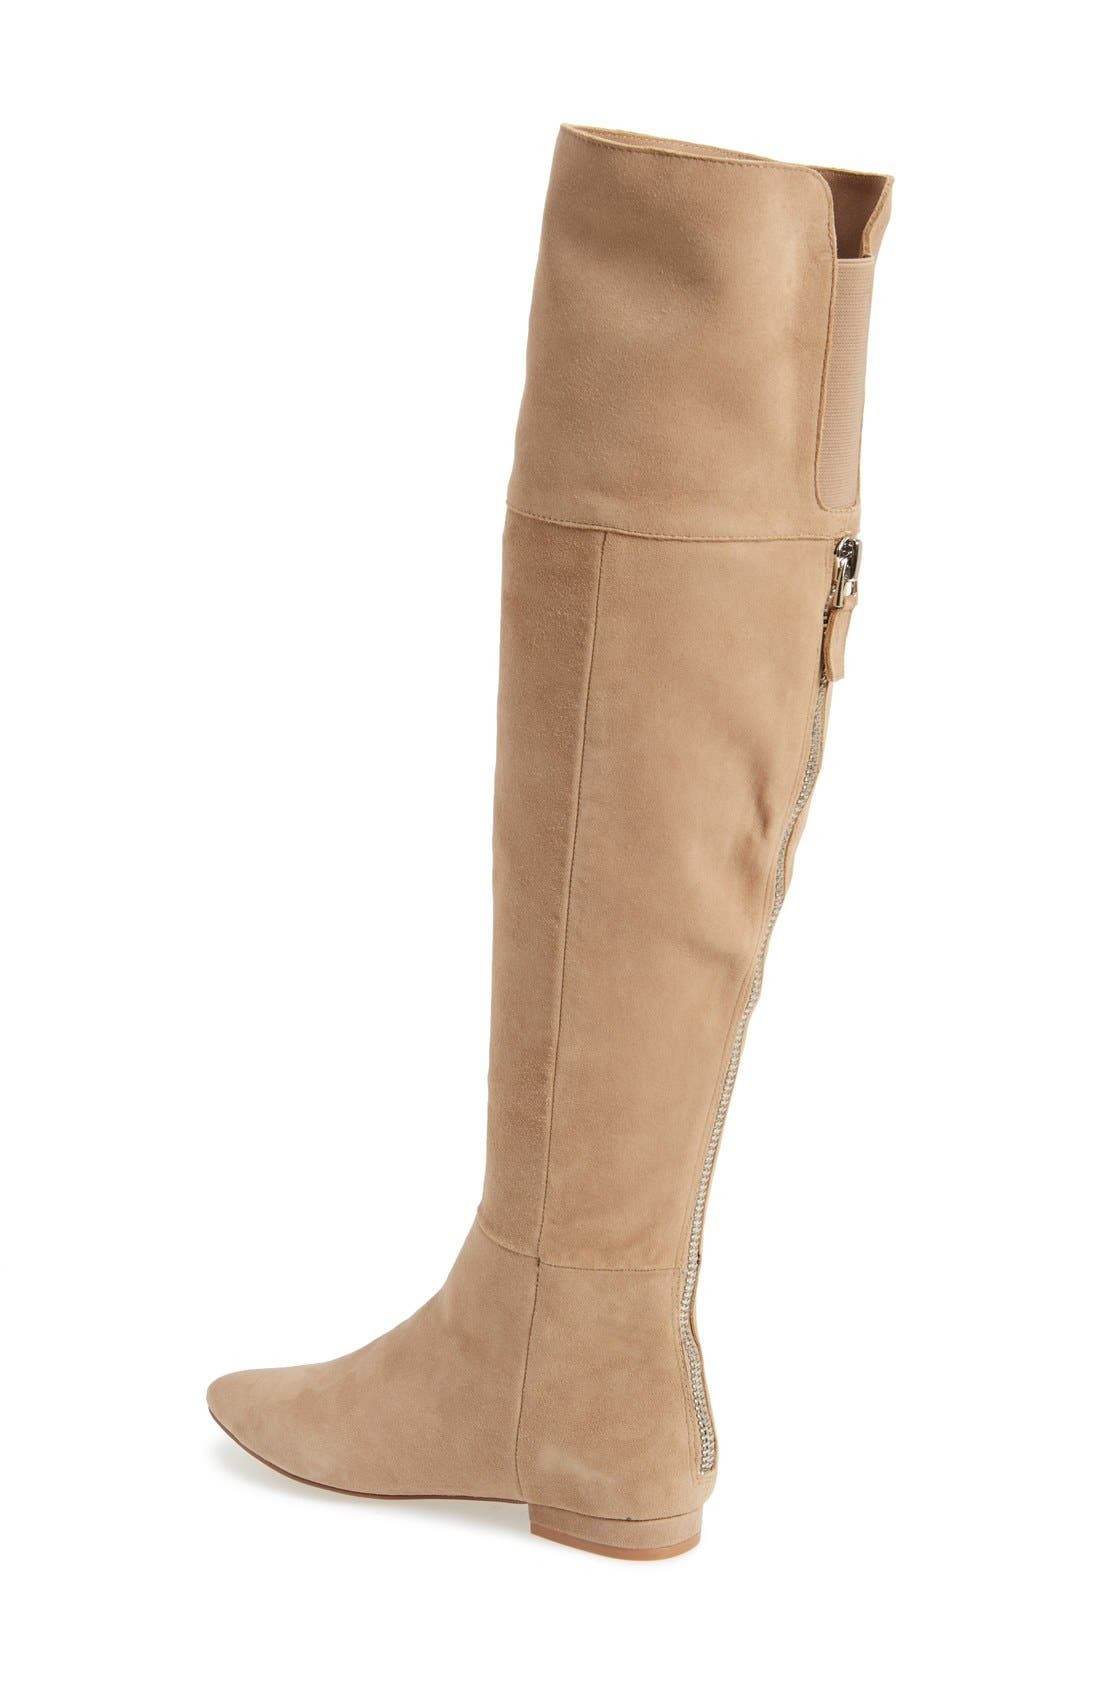 Alternate Image 2  - Kristin Cavallari 'York' Over the Knee Boot (Women)